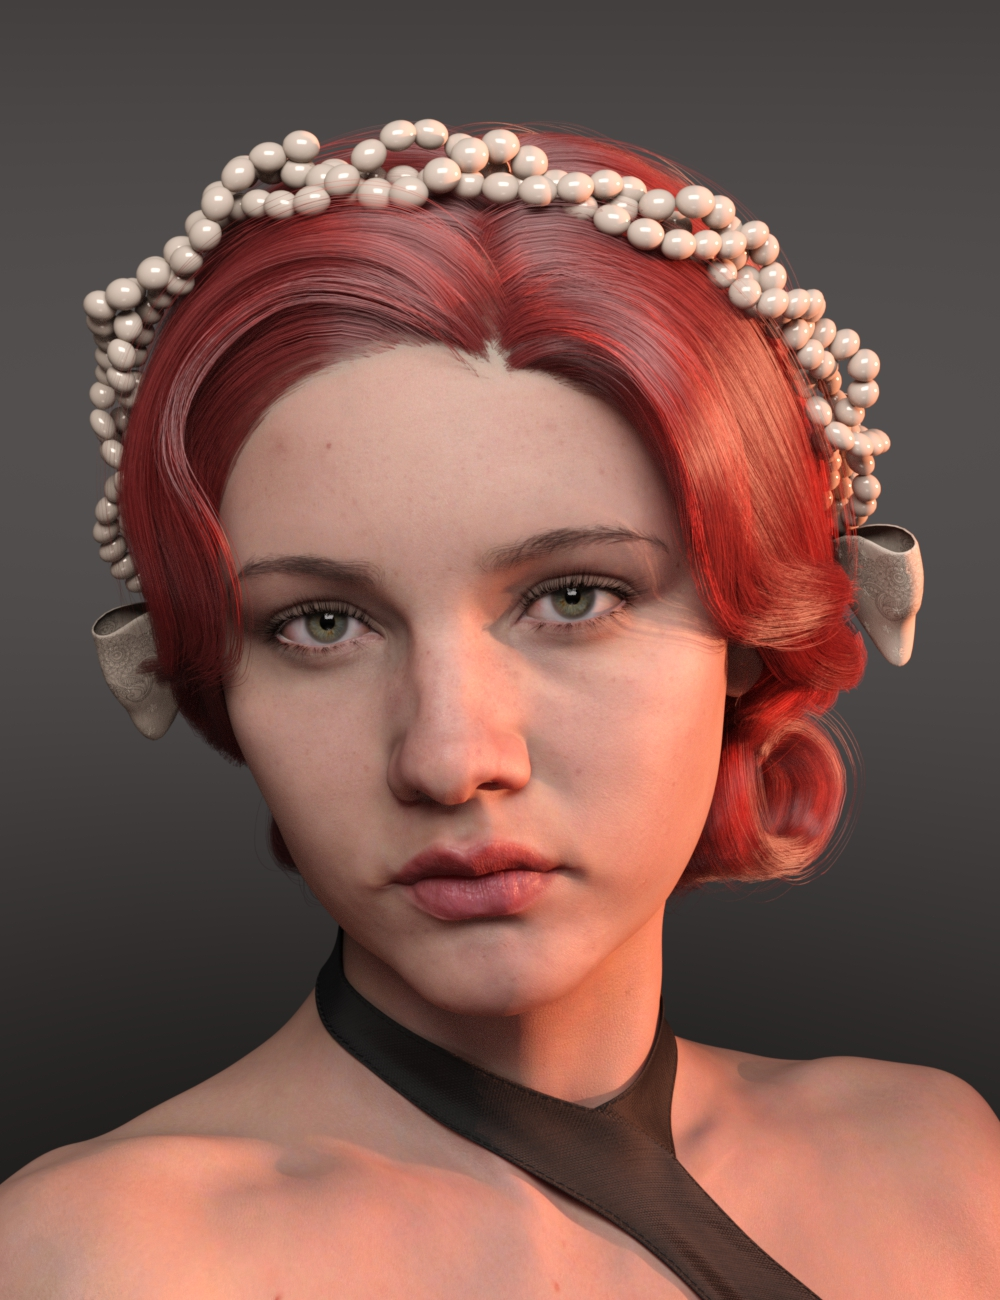 Ler Hair for Genesis 8 and 8.1 Females by: Ergou, 3D Models by Daz 3D